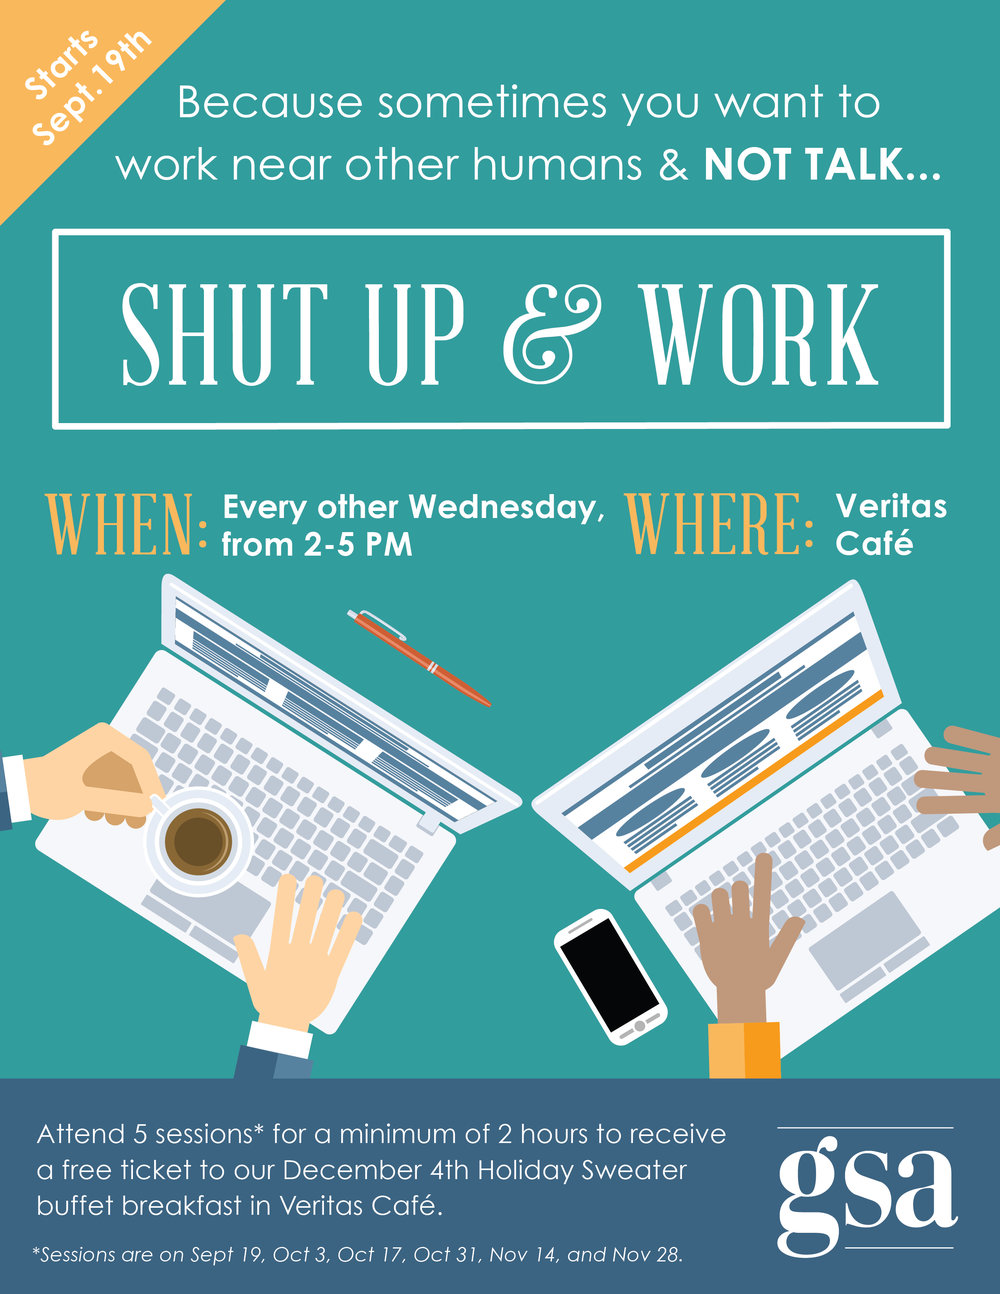 Shut Up & Work starts Sept.19th. Come work in Veritas Cafe every other Wednesday from 2-5 pm. Attend 5 sessions for a minimum of 2 hours to receive a free ticket to our December 4th Holiday Sweater buffet breakfast in the cafe.